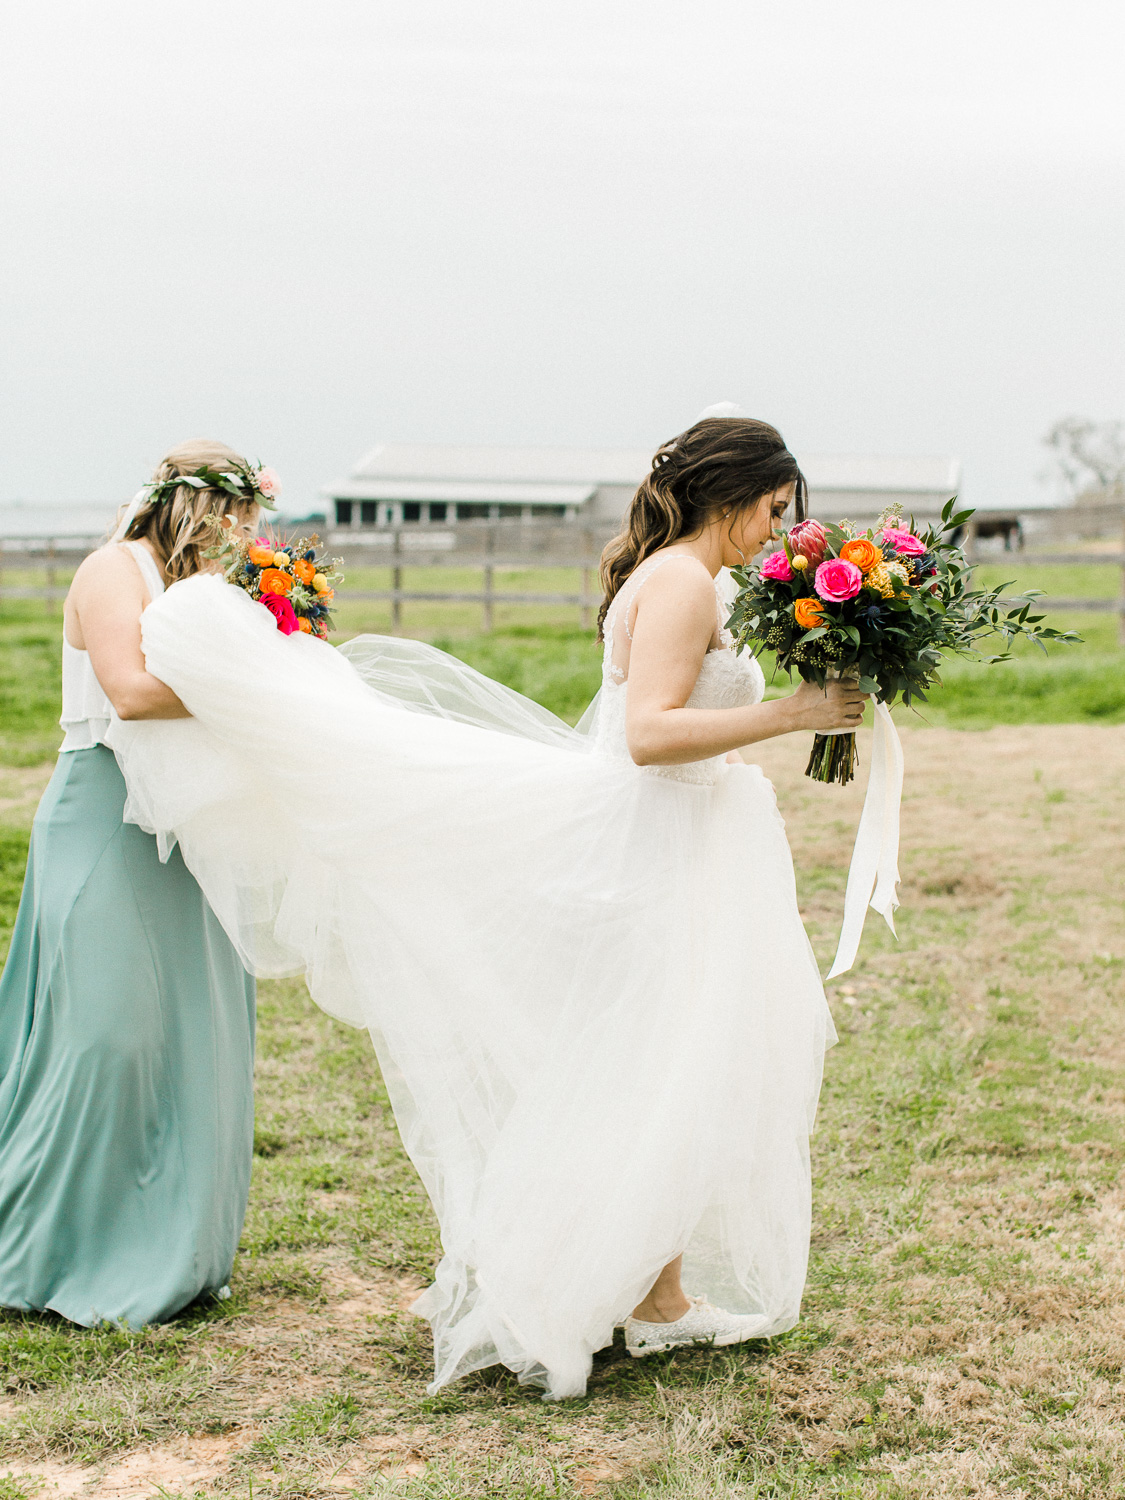 Farmhousewedding_60.jpg